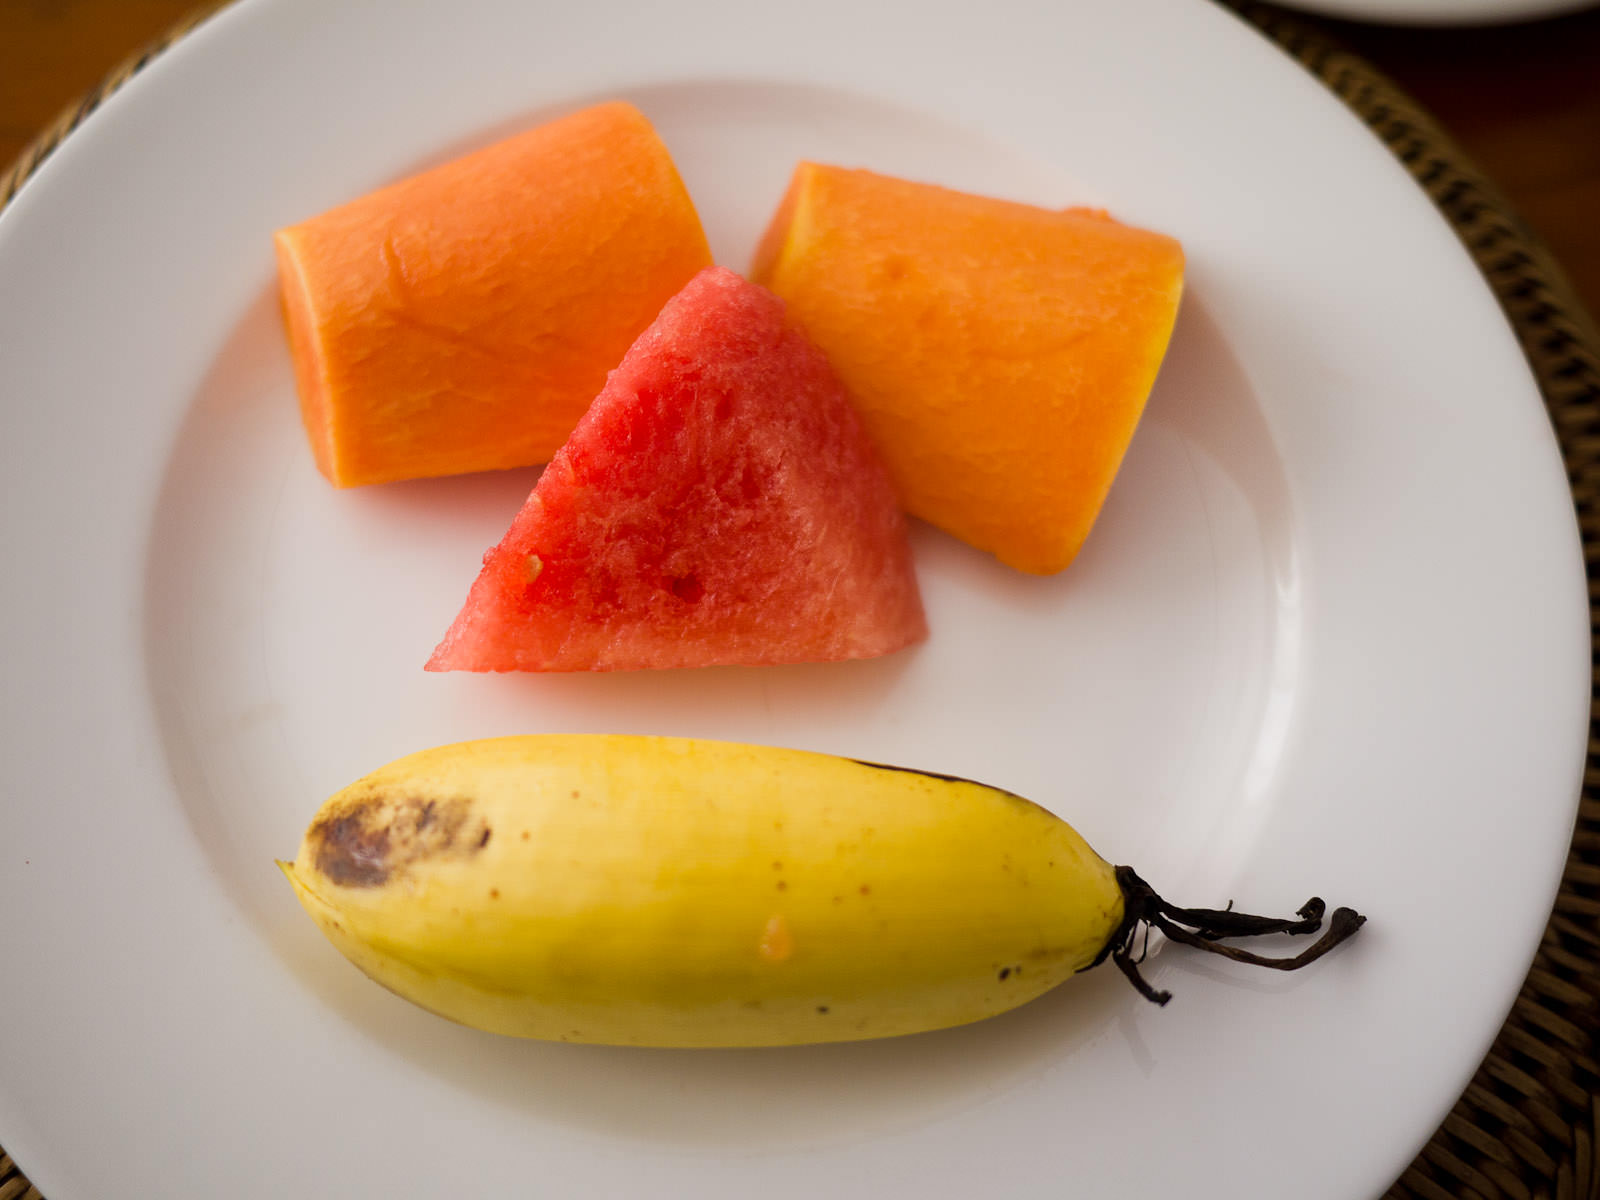 Fruit: papaya, watermelon, banana